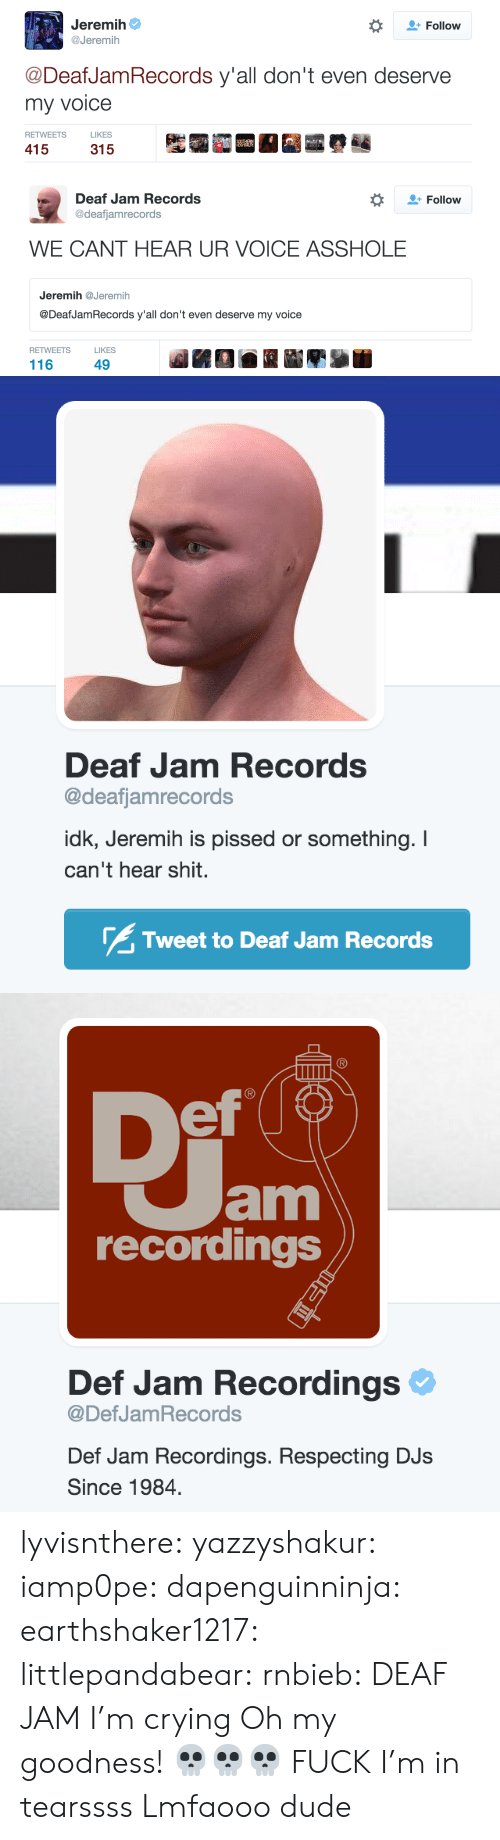 Crying, Dude, and Shit: Jeremih  @Jeremih  *  Follow  @DeafJamRecords y'all don't even deserve  my voice  RETWEETS  LIKES  415   Follow  Deaf Jam Records  @deafjamrecords  WE CANT HEAR UR VOICE ASSHOLE  Jeremih@Jeremih  @DeafJamRecords y'all don't even deserve my voice  RETWEETS  LIKES  116  49   Deaf Jam Records  @deafjamrecords  idk, Jeremih is pissed or something. I  can't hear shit.  Tweet to Deaf Jam Records   ef  am  recordings  Def Jam Recordings  @DefJamRecords  Def Jam Recordings. Respecting DJs  Since 1984 lyvisnthere:  yazzyshakur:  iamp0pe:  dapenguinninja:  earthshaker1217:  littlepandabear:  rnbieb:  DEAF JAM  I'm crying  Oh my goodness!  💀💀💀  FUCK  I'm in tearssss  Lmfaooo dude